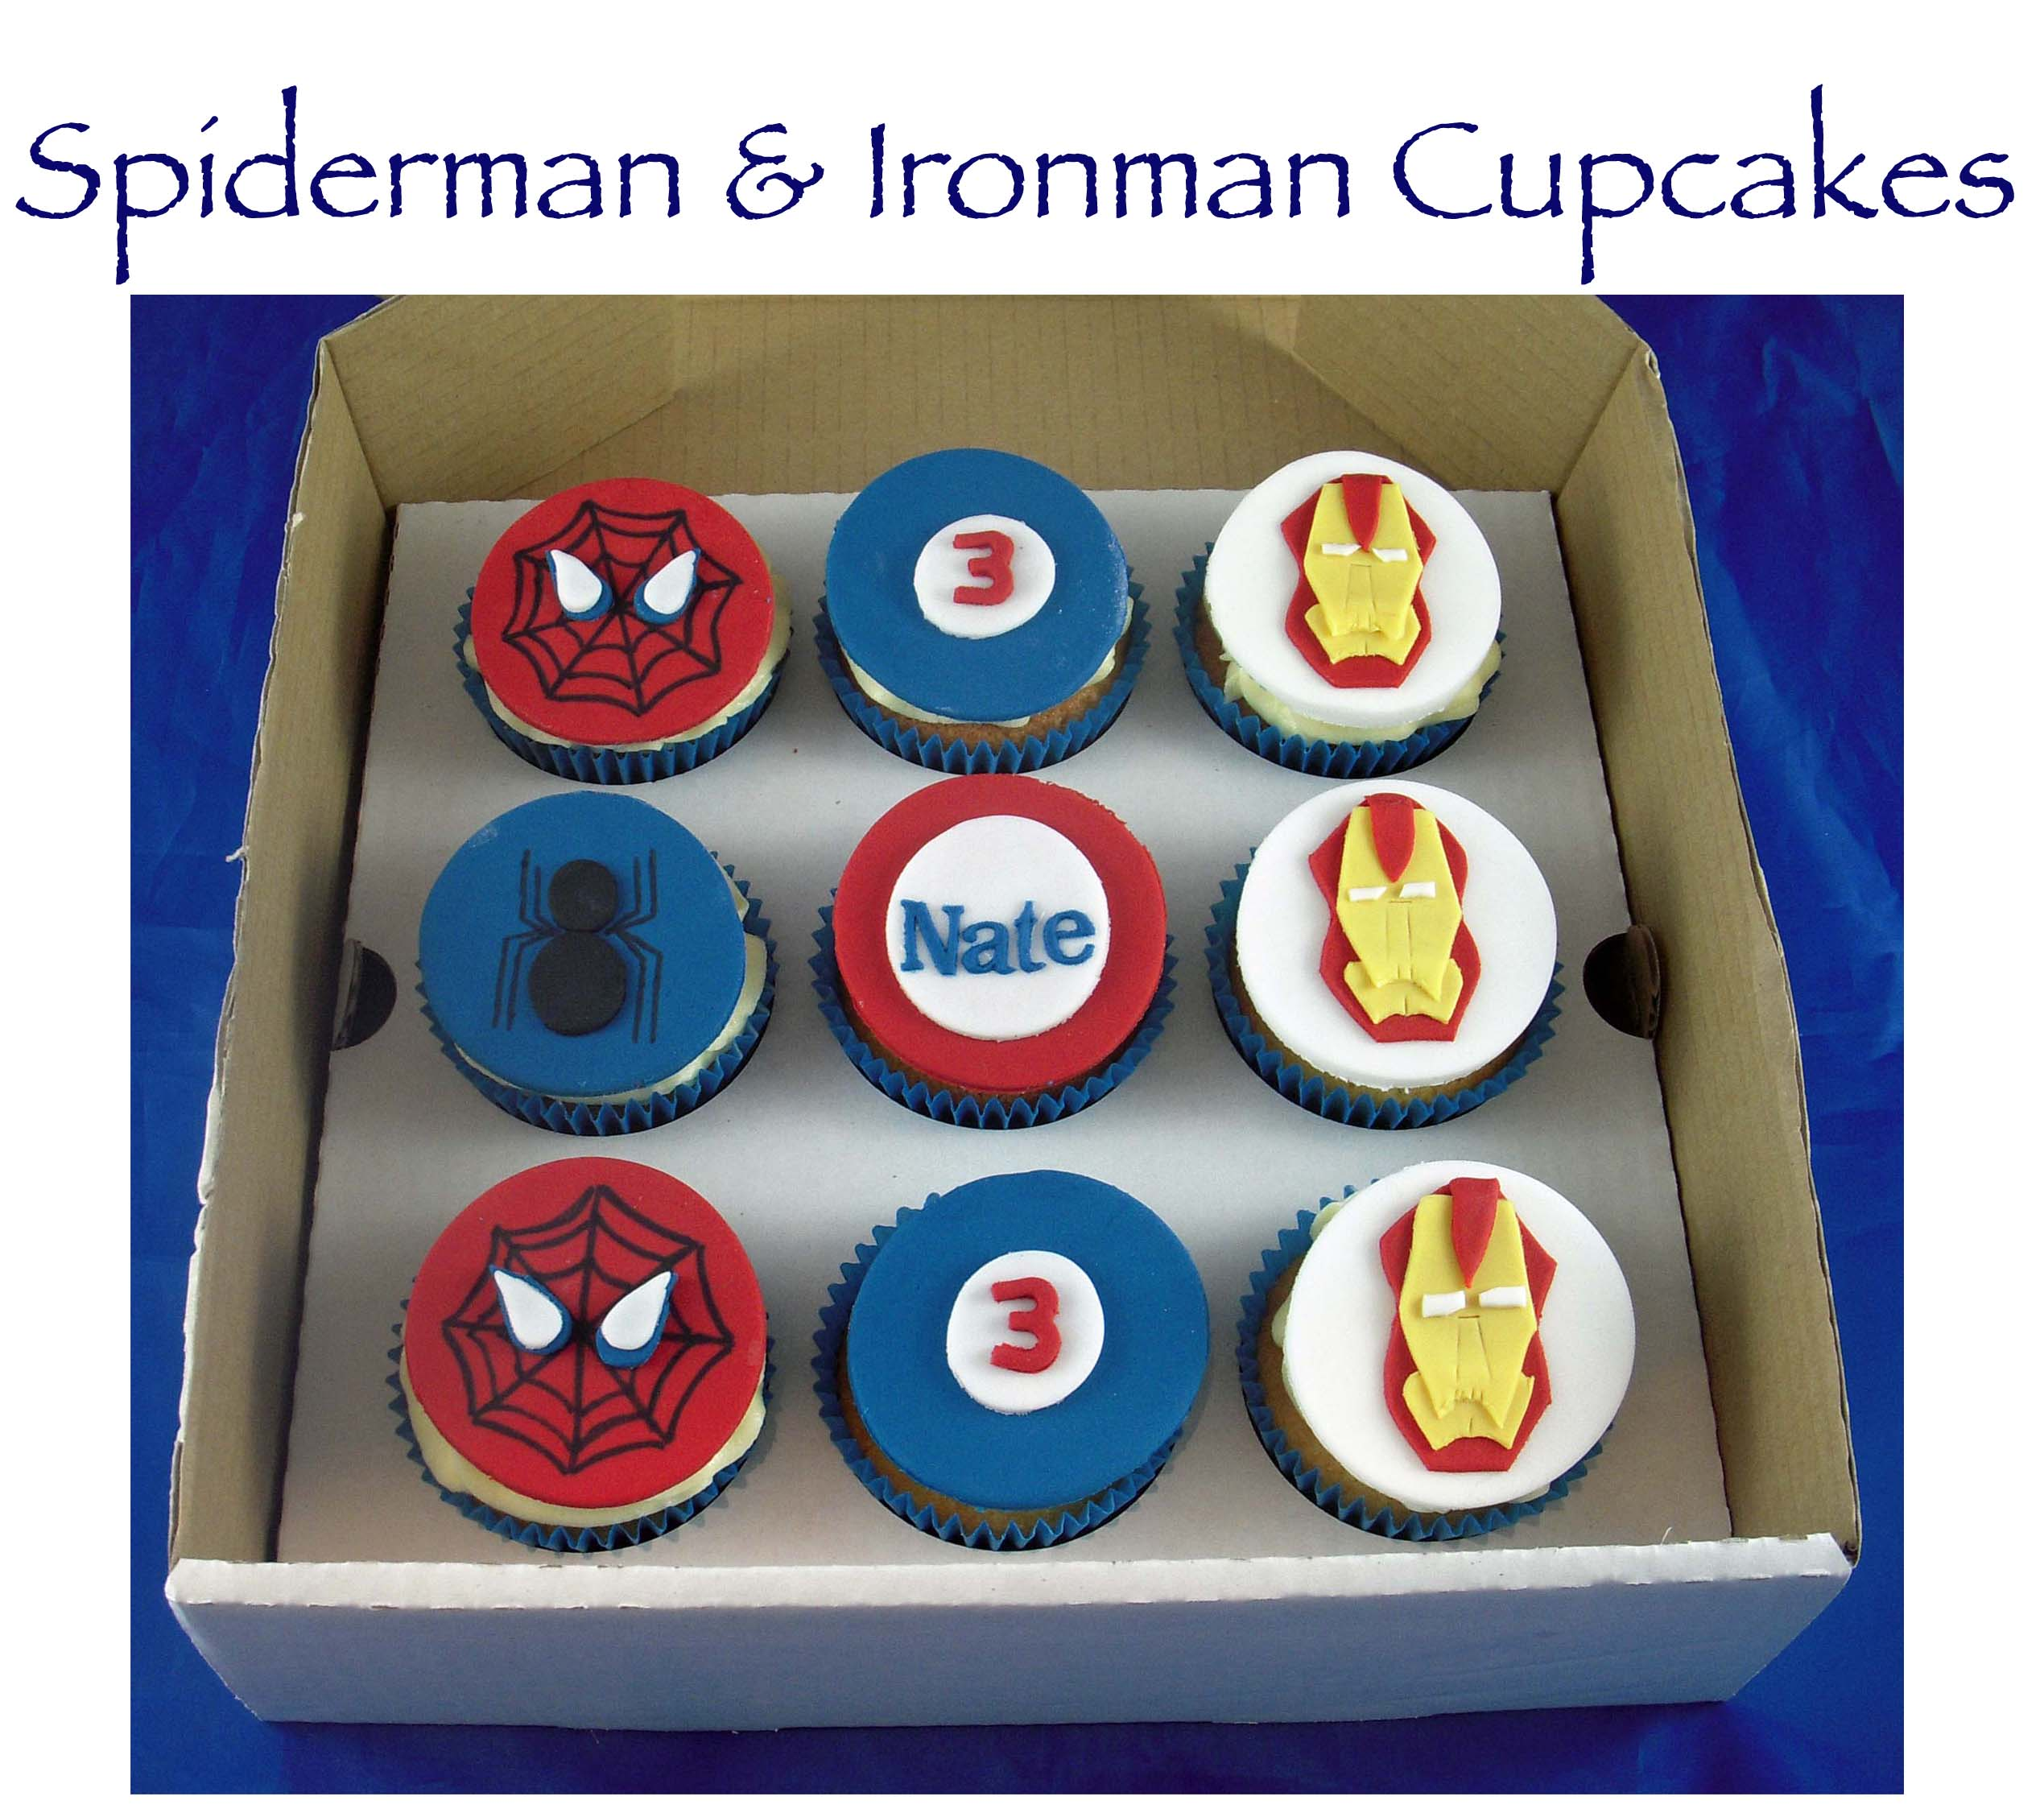 Spiderman and Ironman Cupcakes